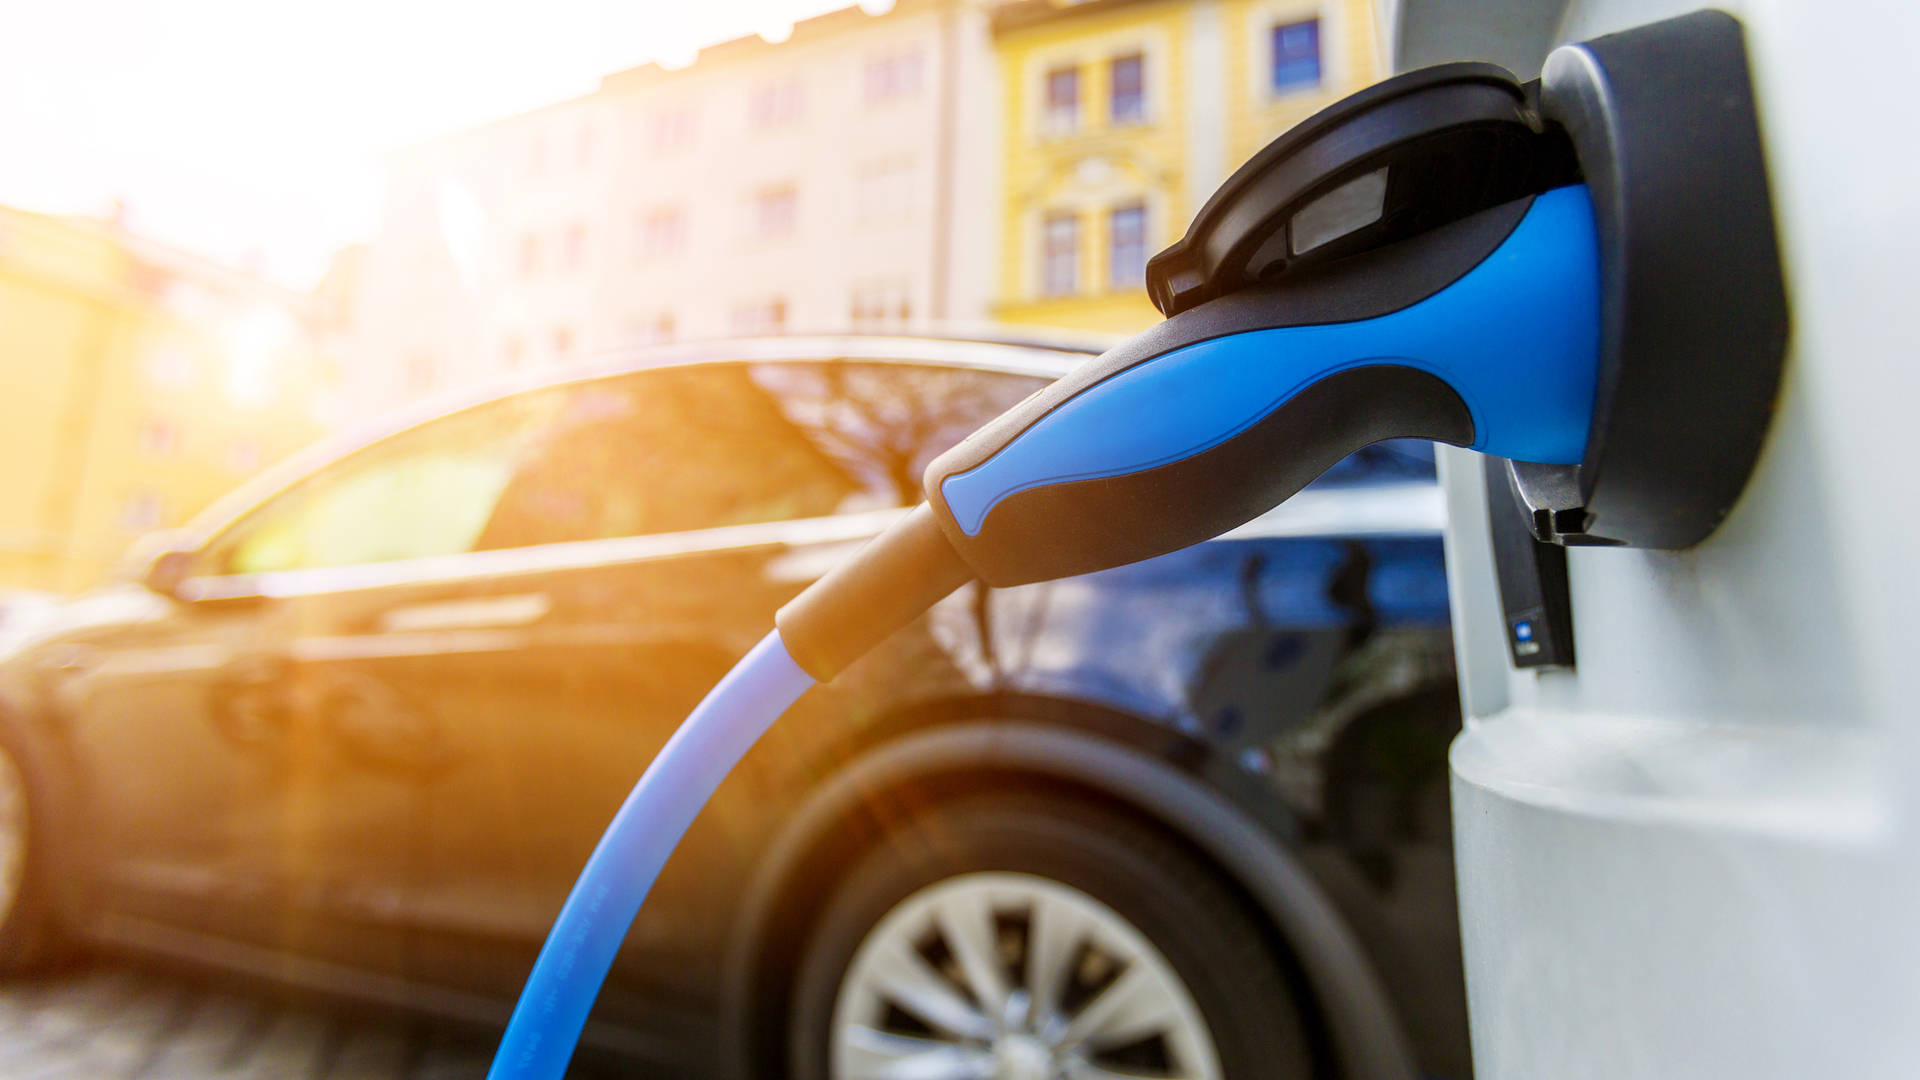 Klefr Energy Meters Can Be Used In Any Electric Vehicle Charging System The Meter Measures Usage Of Kilowatt Hours And Due To Its Mid Certificate It